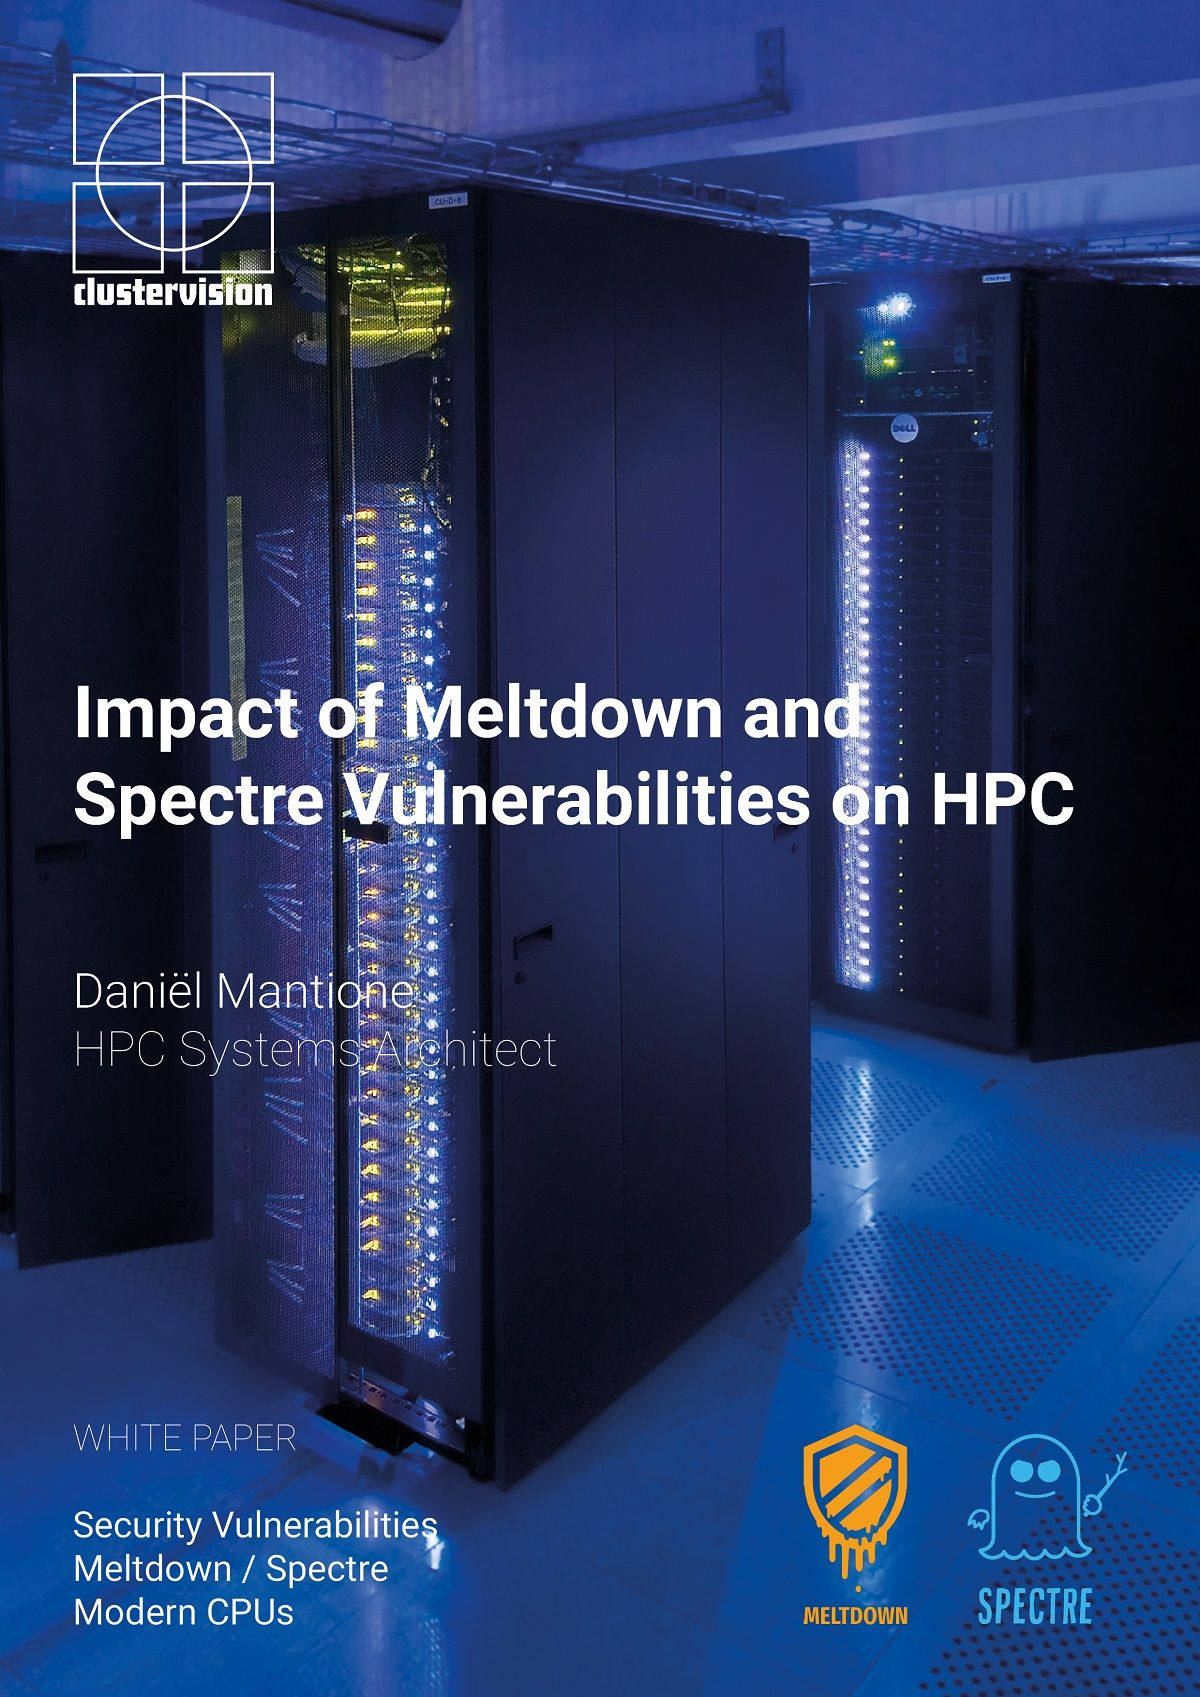 Impact of Meltdown and Spectre Vulnerabilities on HPC